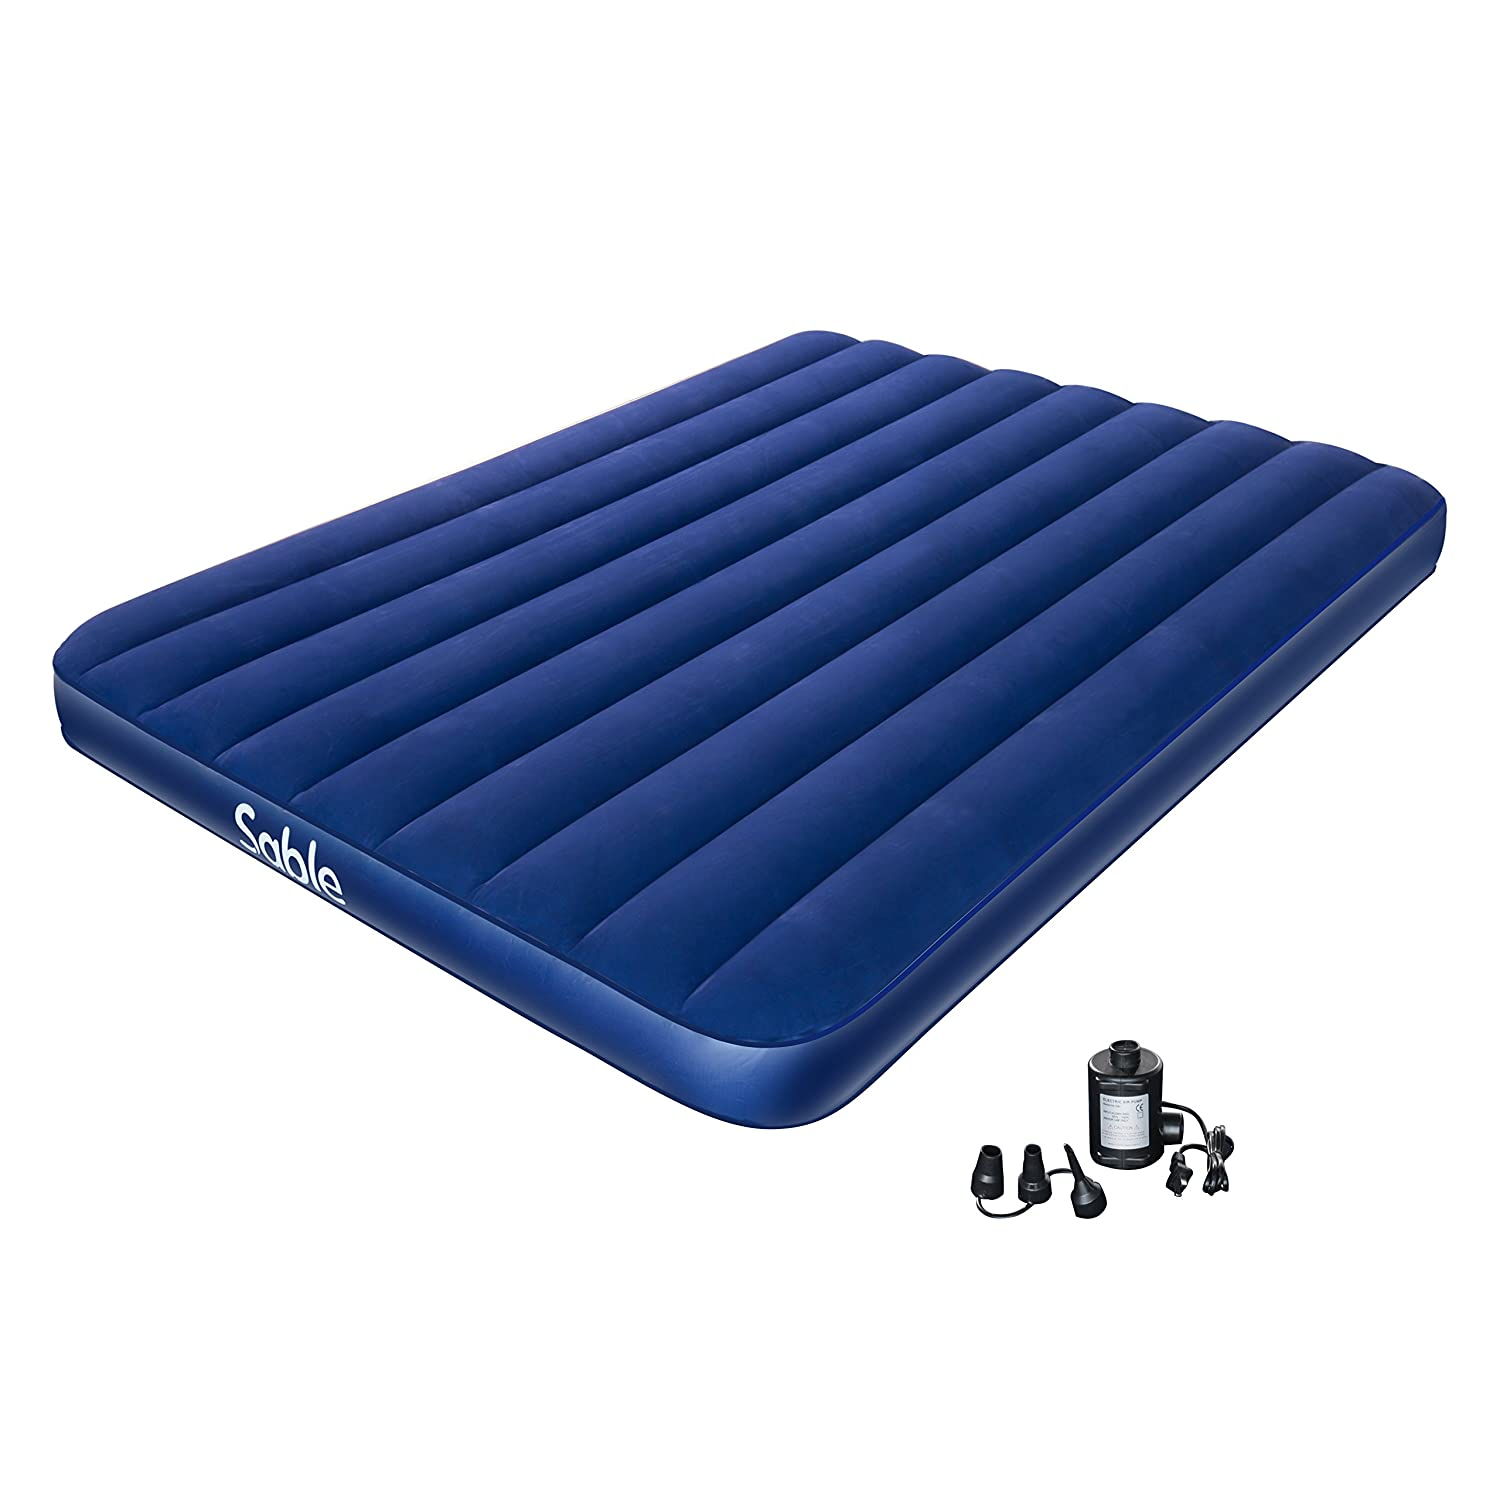 Sable Air Mattress, Upgraded Inflatable Camping AirBed Blow up Bed for Guest Car Tent Camping Hiking Backpacking with Storage Bag - Height 8 inches, Twin Size